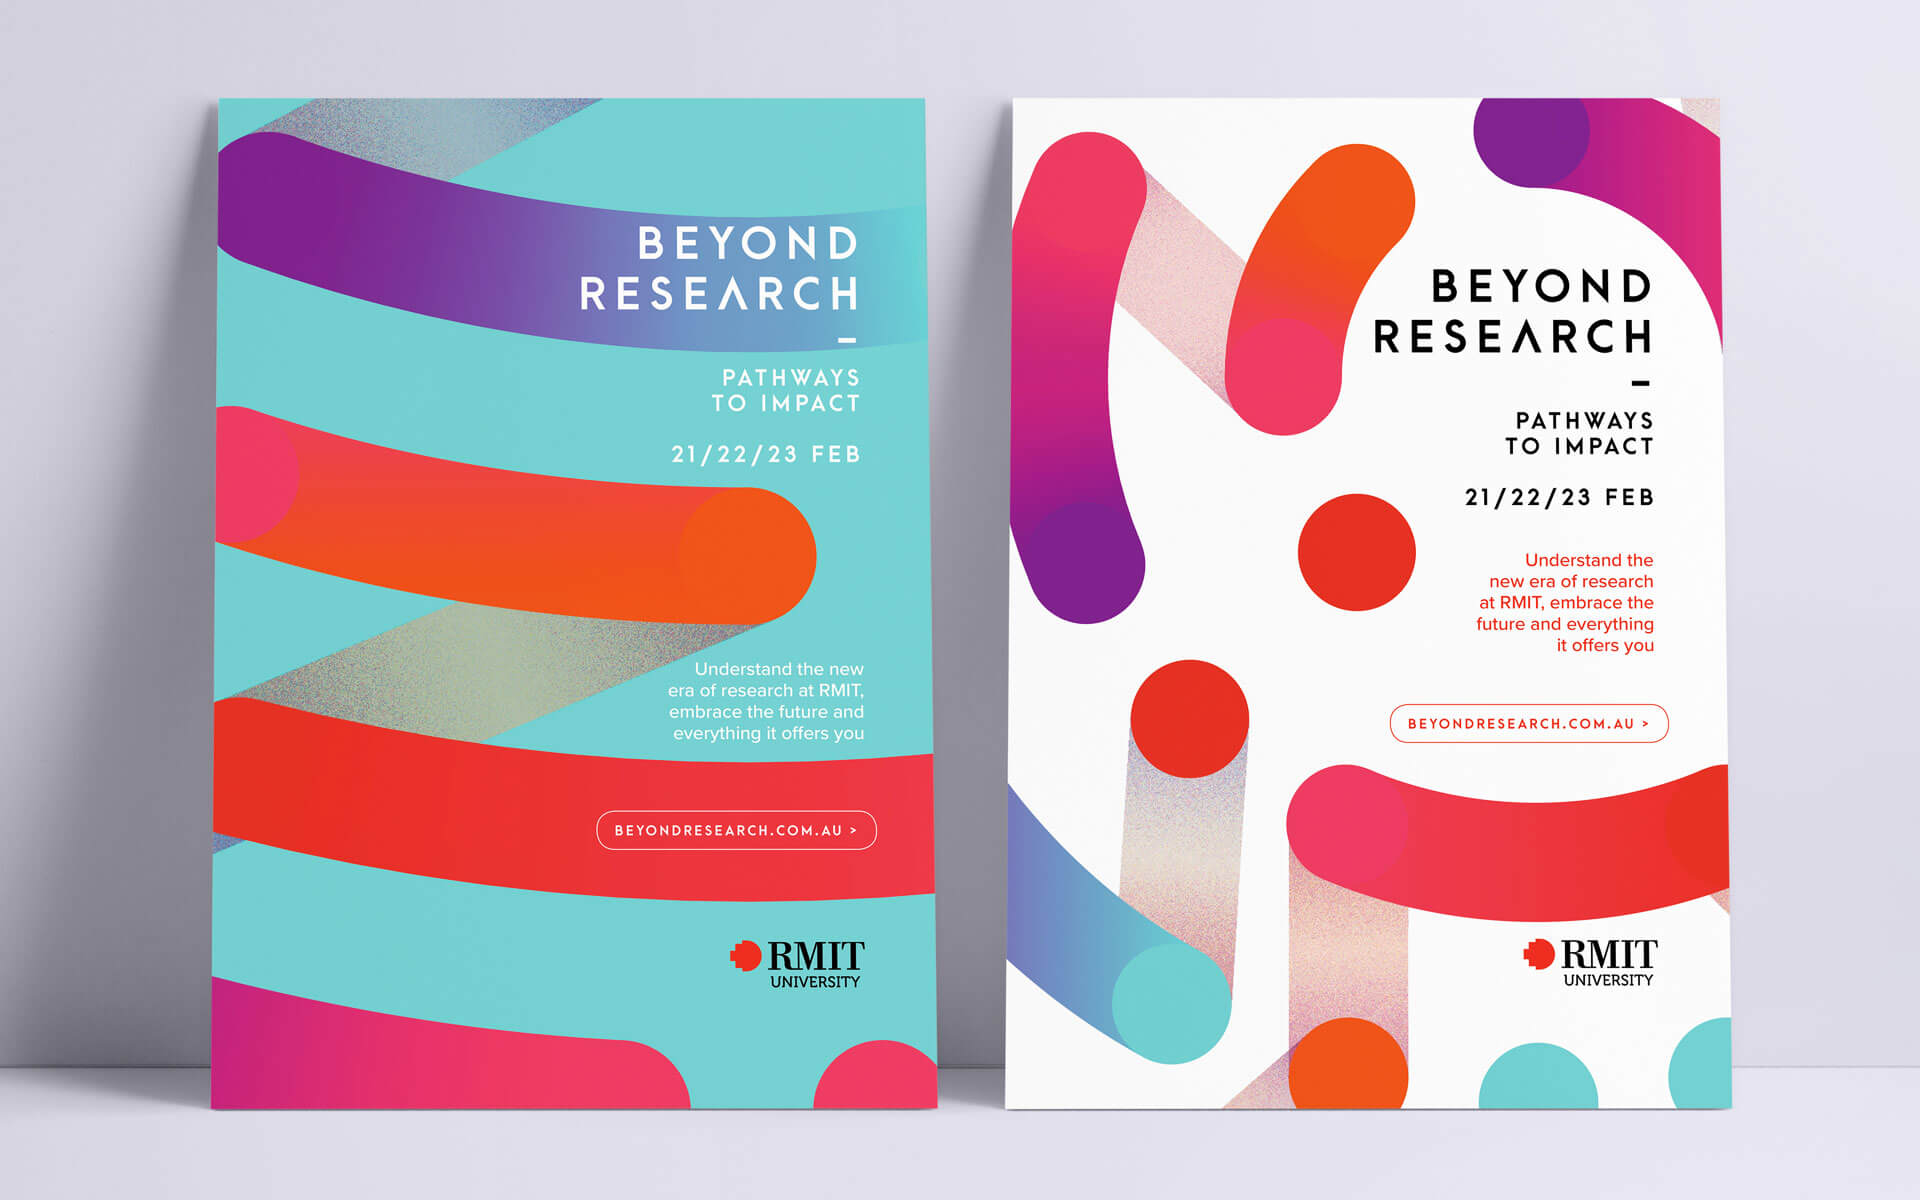 Beyond Research poster designs.